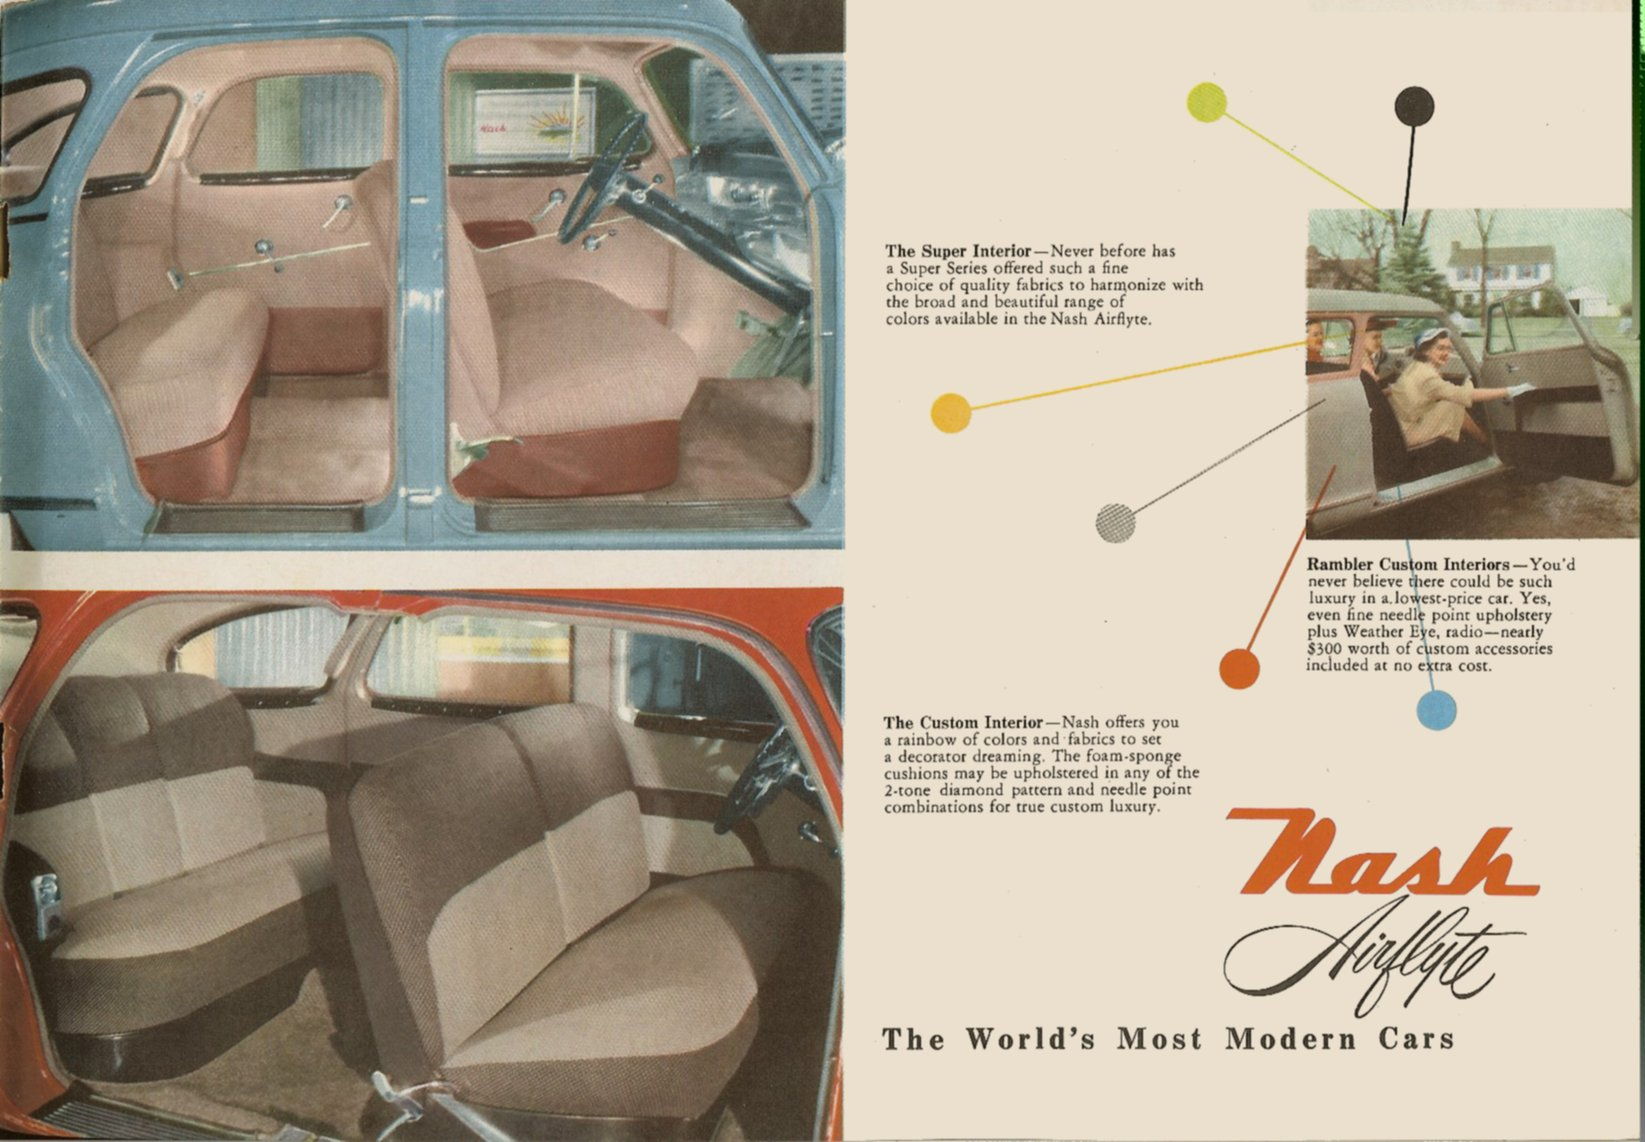 1951 NASH The New NASH Airflytes Sales Catalog NSP51-783-400M – October 1, 1951 Page 14